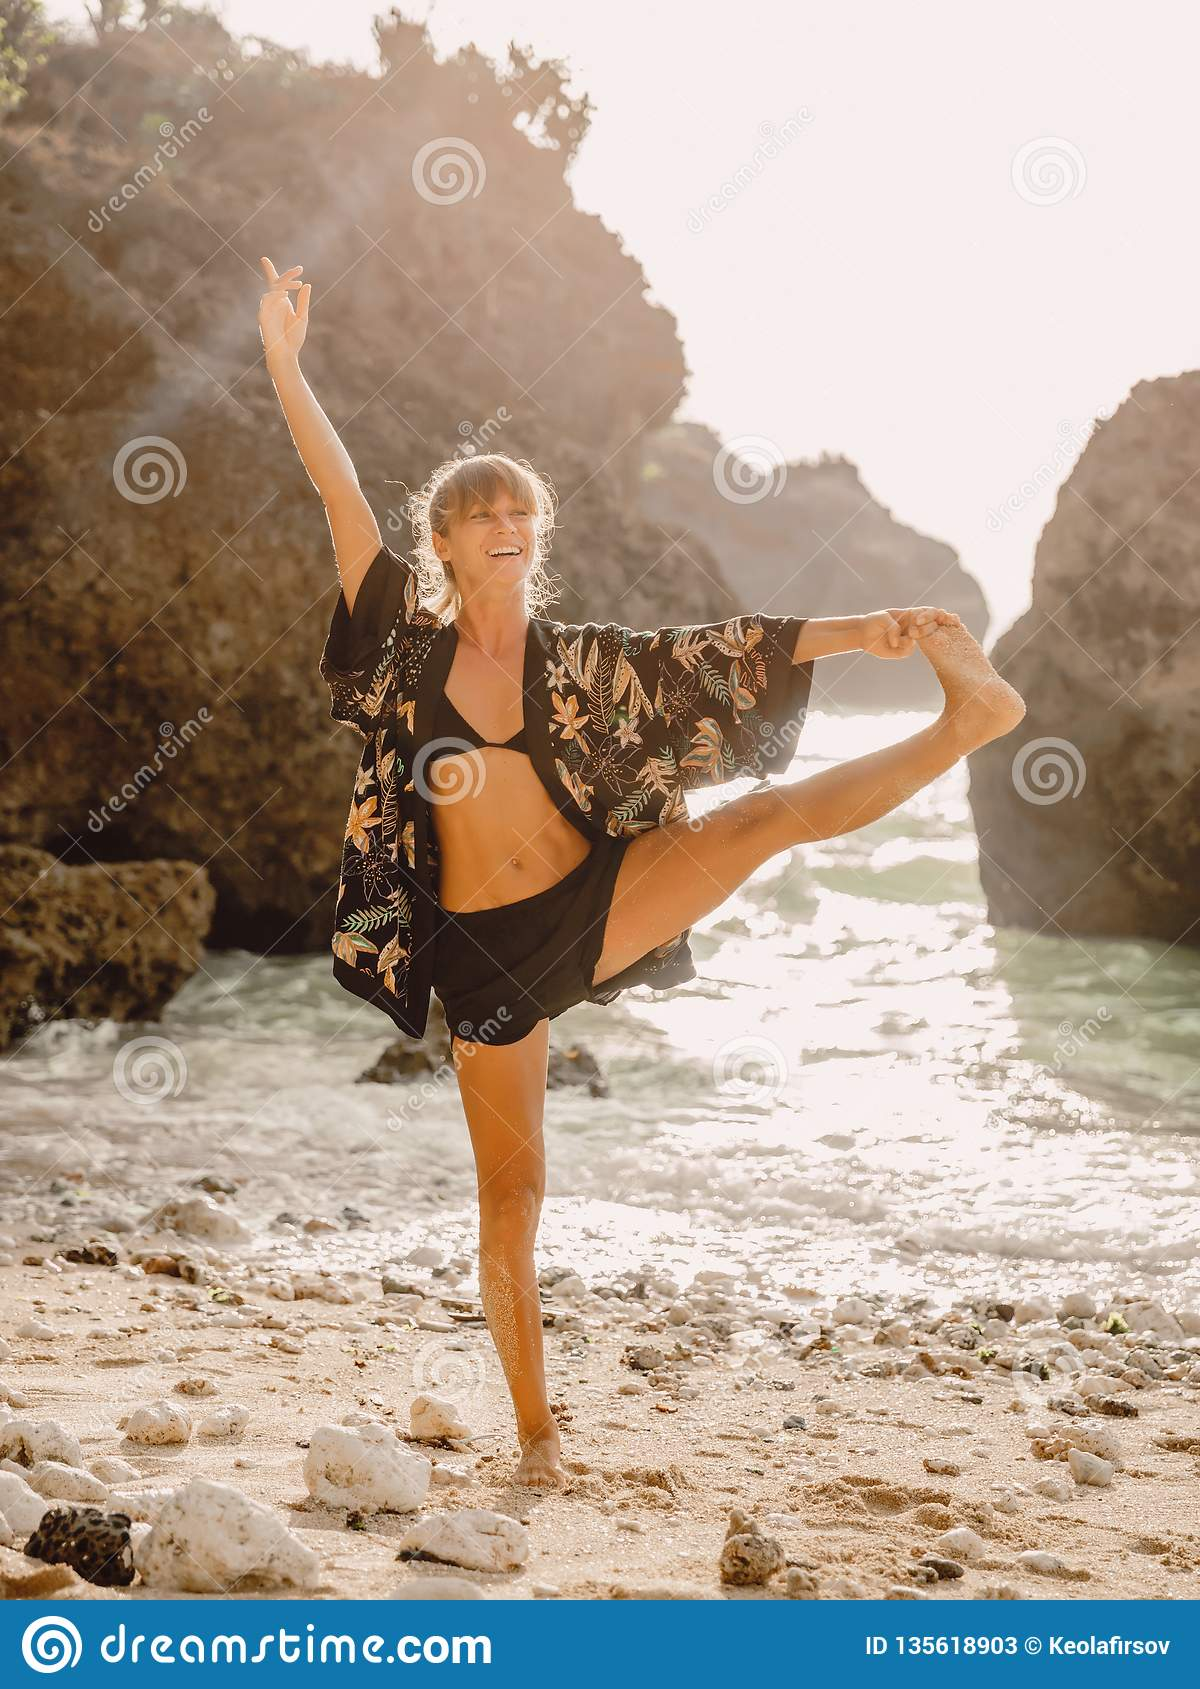 Sporty woman practice gymnastics at beach with sunset or sunrise